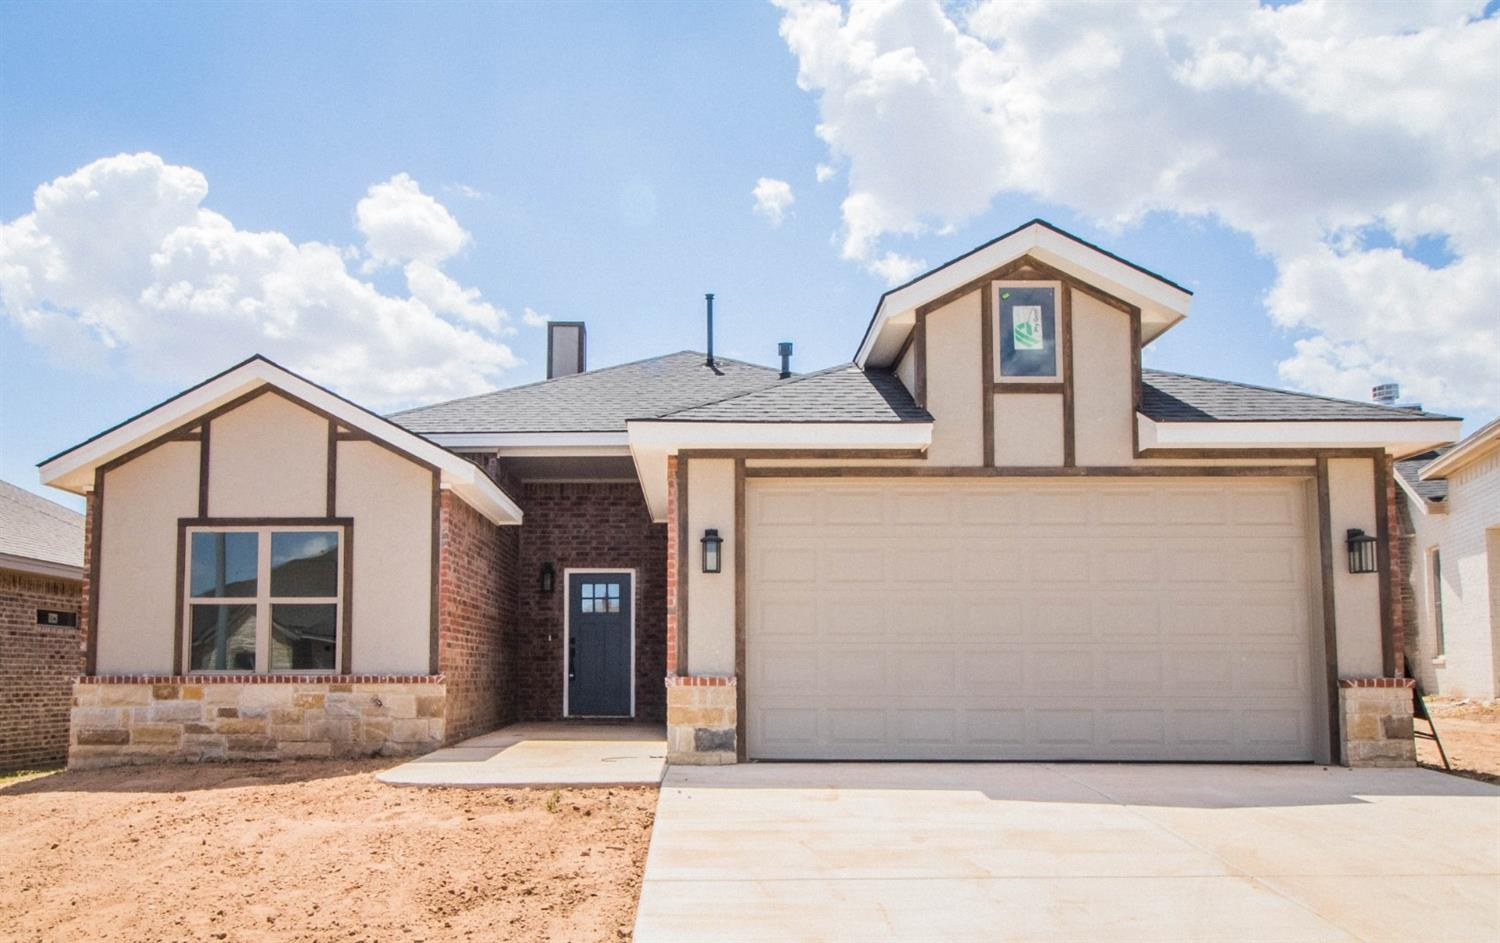 This lovely Craig Roberson property combines the luxury of modern amenities with the classic flavor of home. If you're looking for a tasteful property with carefully crafted finishes, this may be the new home you've been looking for!